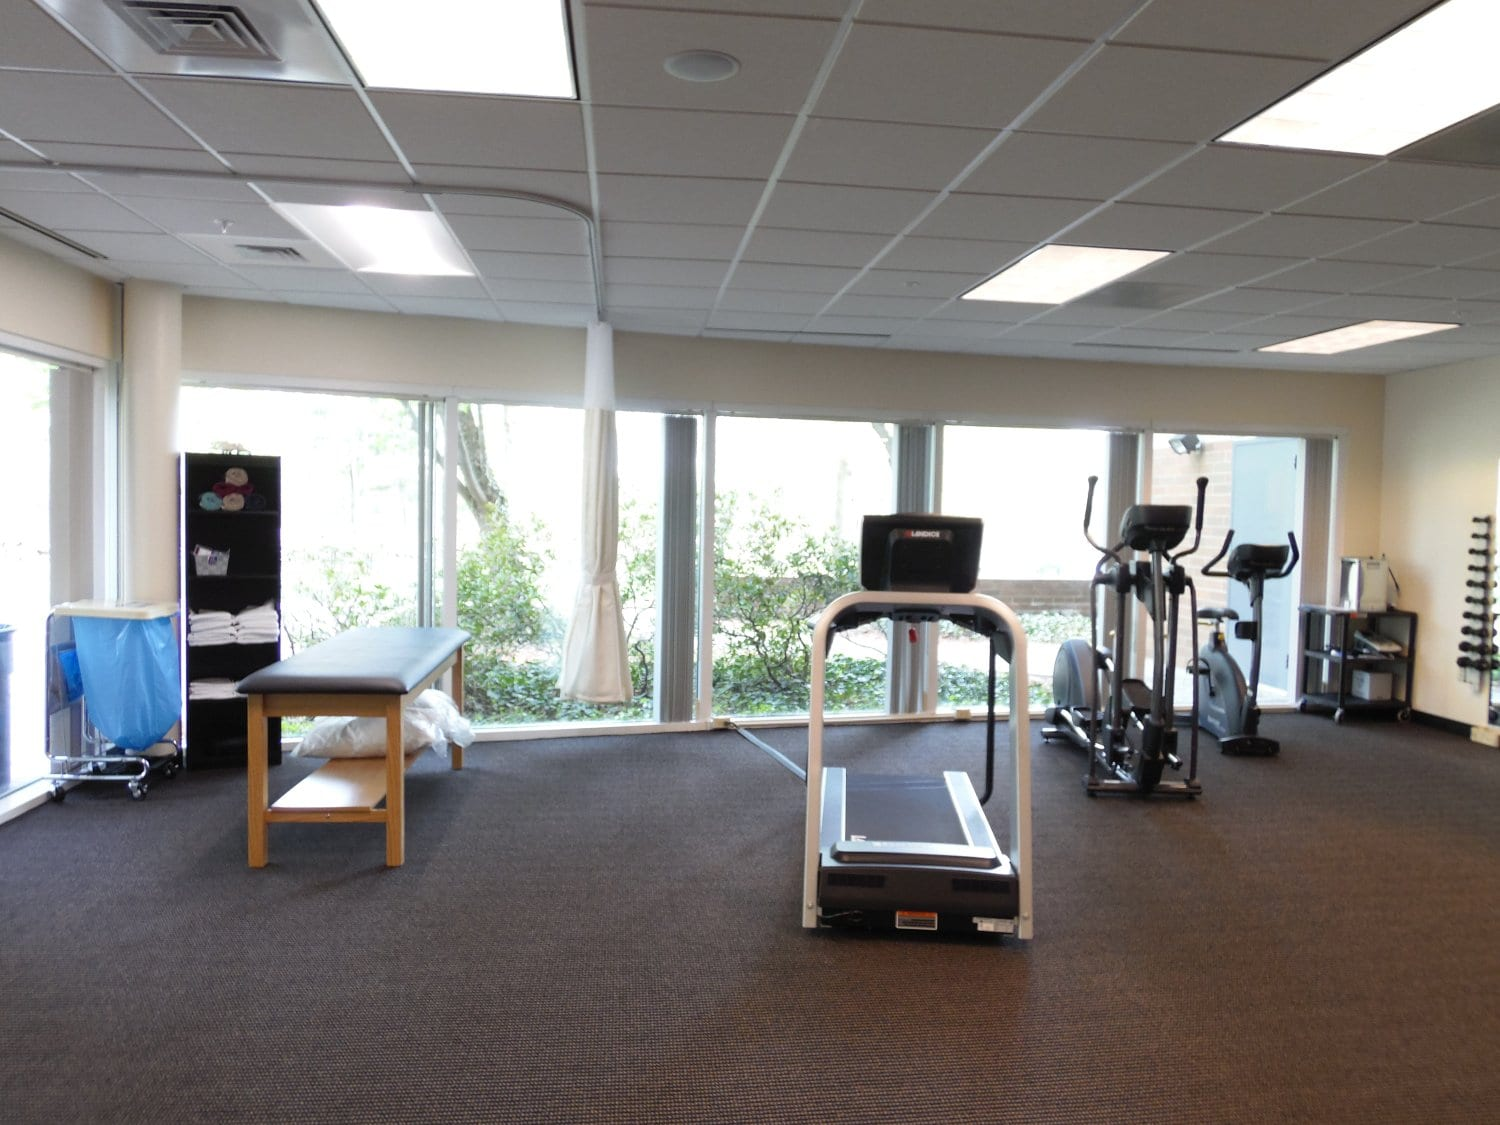 This is an image of the training area with physical therapy equipment at our clinic in Andover, Massachusetts.